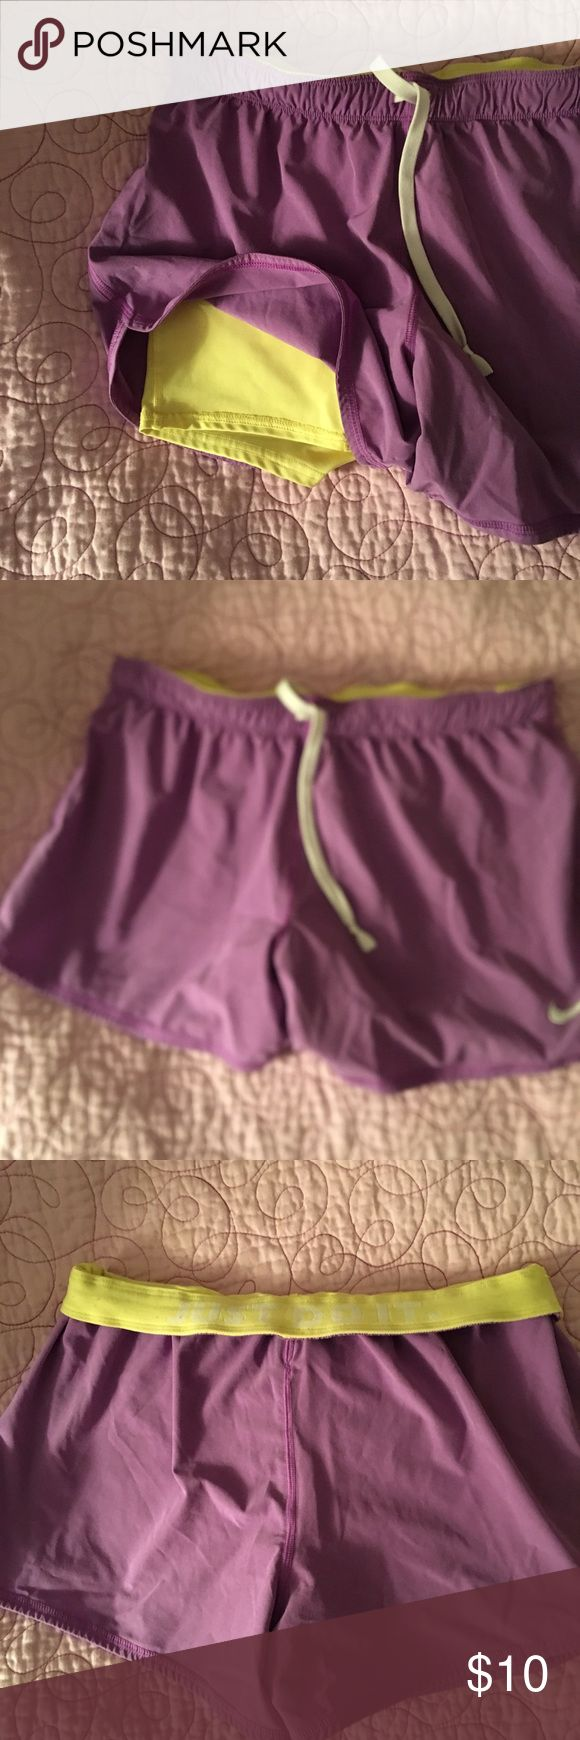 Nike Pro Combat Shorts Nike Pro Combat Shorts. Yellow compression short with purple overlay Nike Shorts